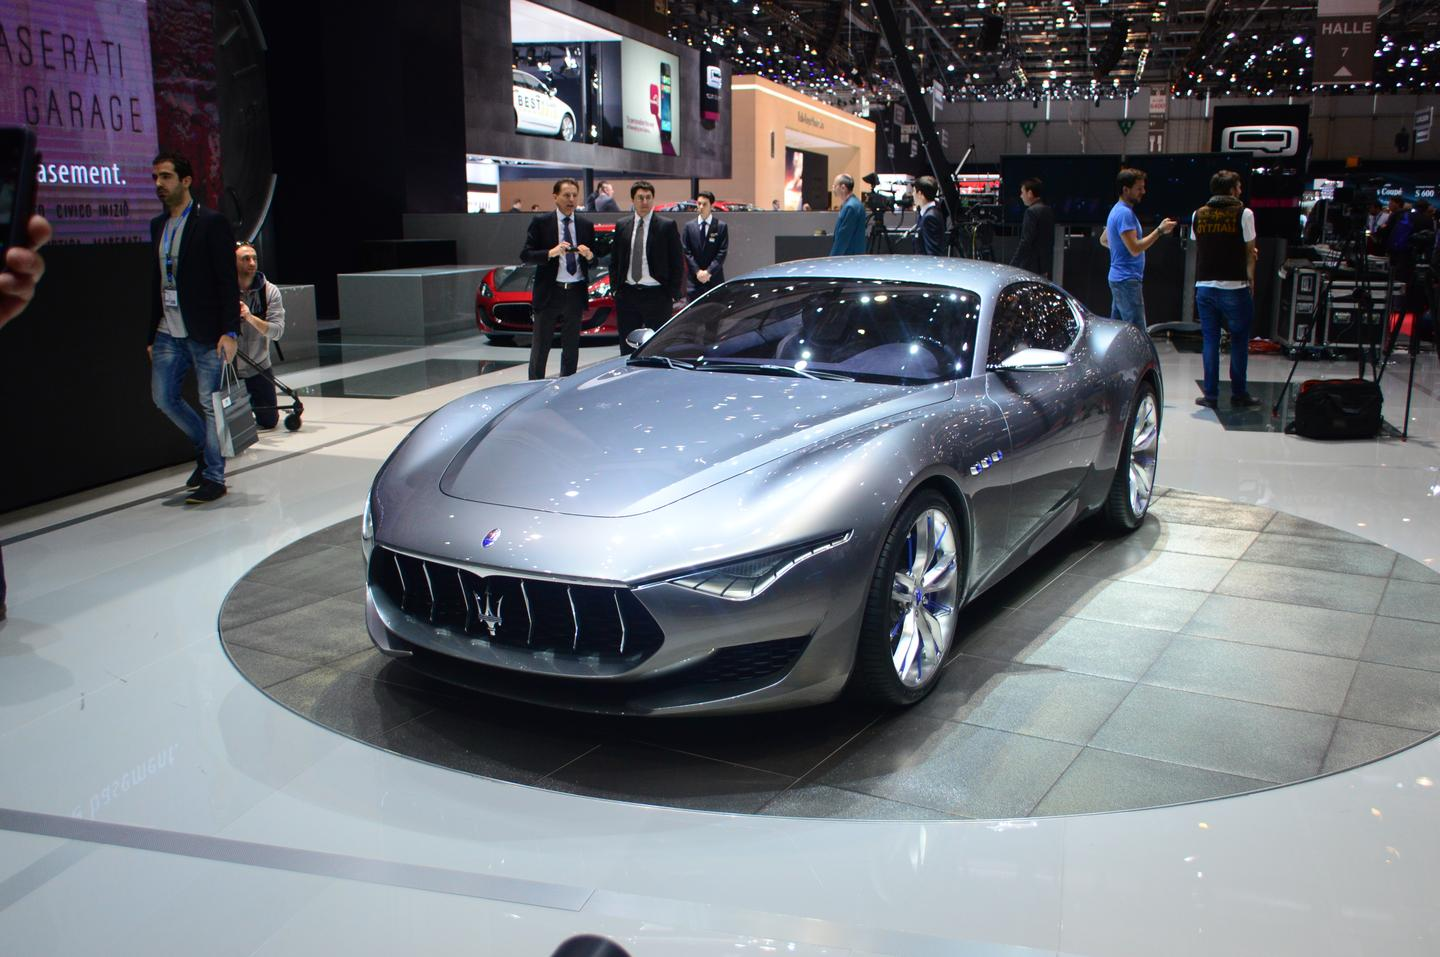 The Maserati Alfieri concept at the 2014 Geneva Motor Show